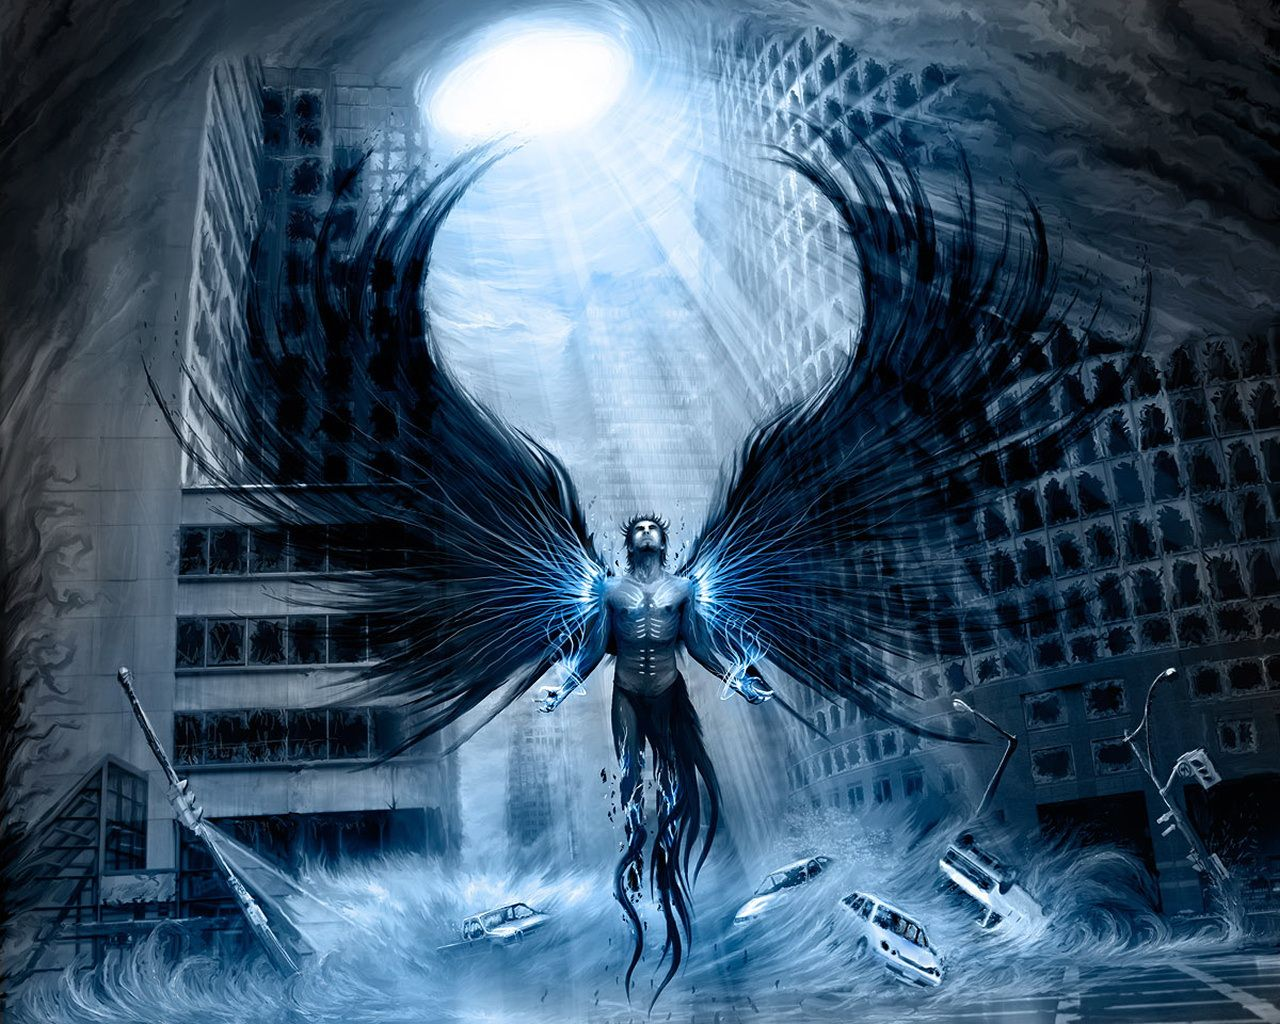 Disaster Water Angel In The City Wallpaper From Angels Wallpapers Angel Wallpaper Dark Angel Wallpaper Conceptual Illustration